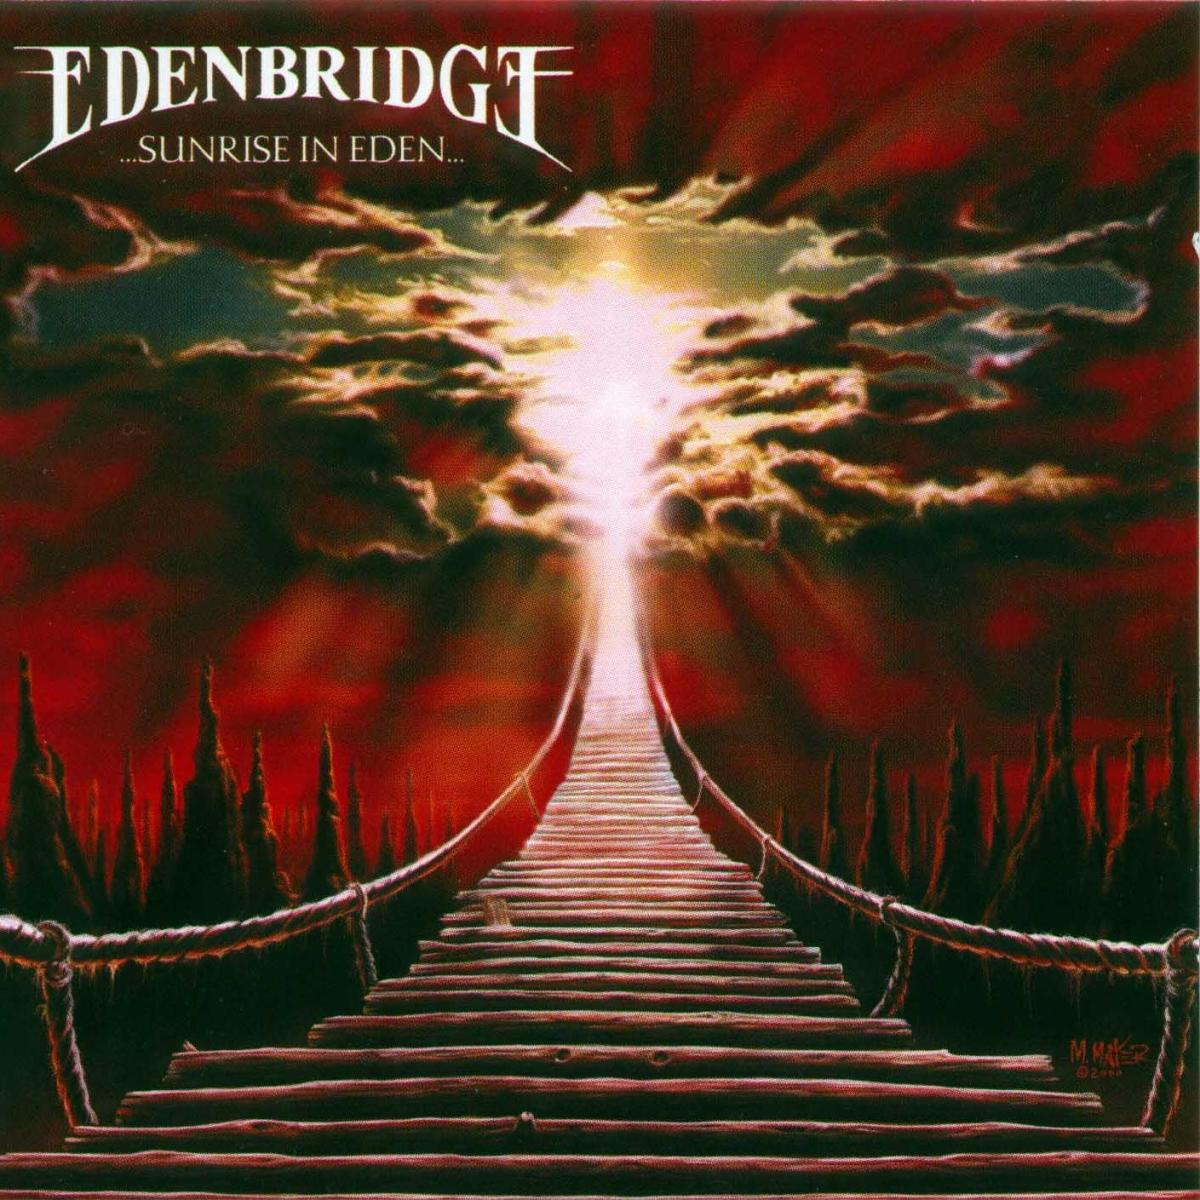 The album cover shows a bridge that leads up to heaven as the sky is opening up. The album may feel like a heavenly experience if you give it a chance.